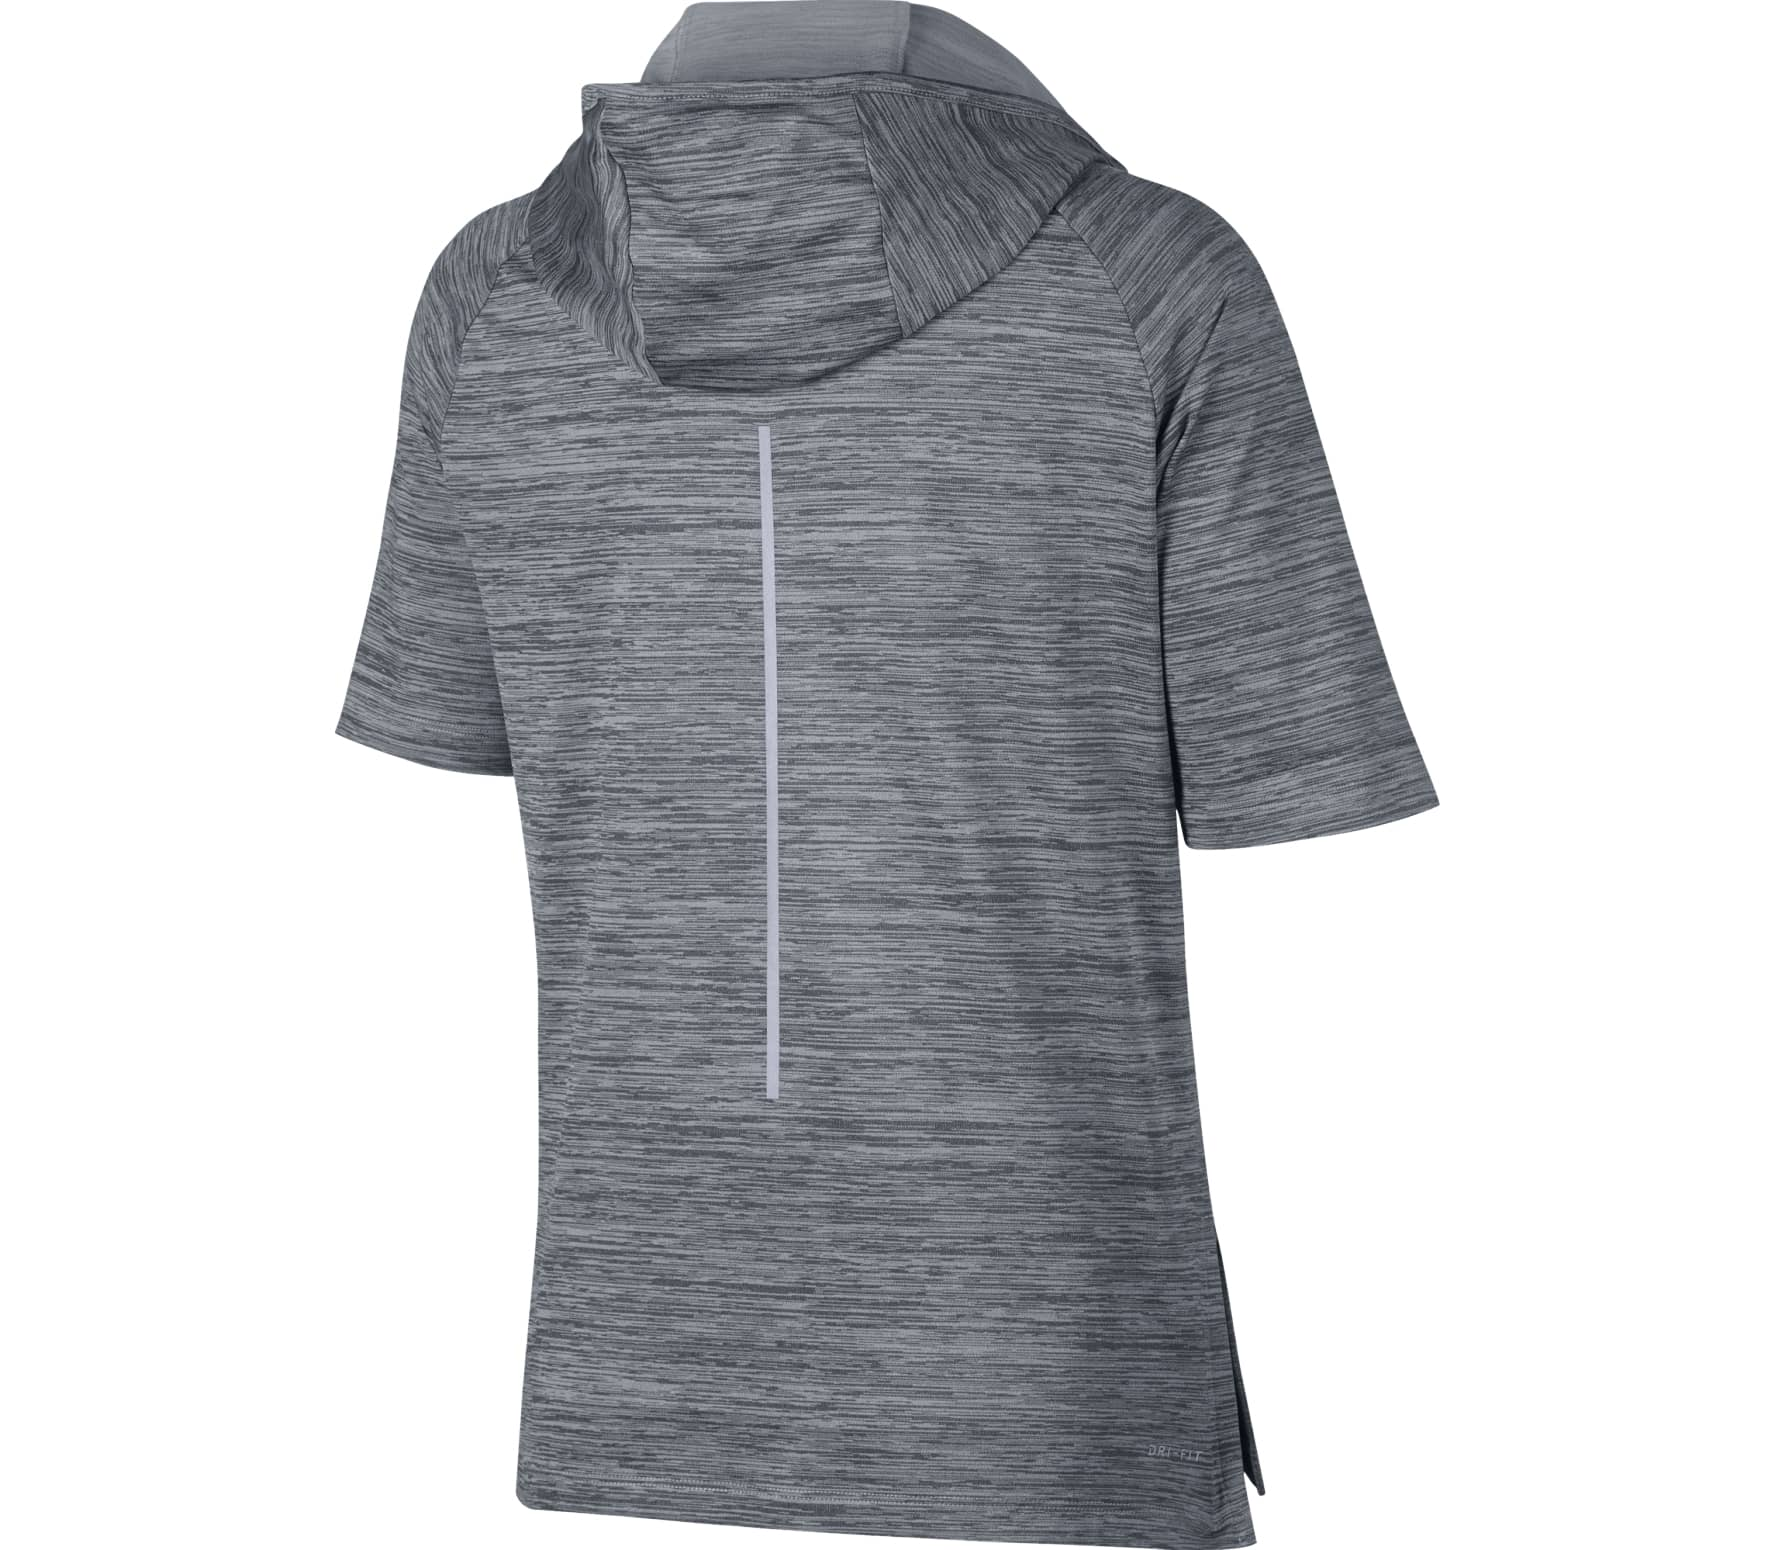 Nike - Mid Shortsleeve women s running hoodie (grey) - buy it at the ... 9e05253e69